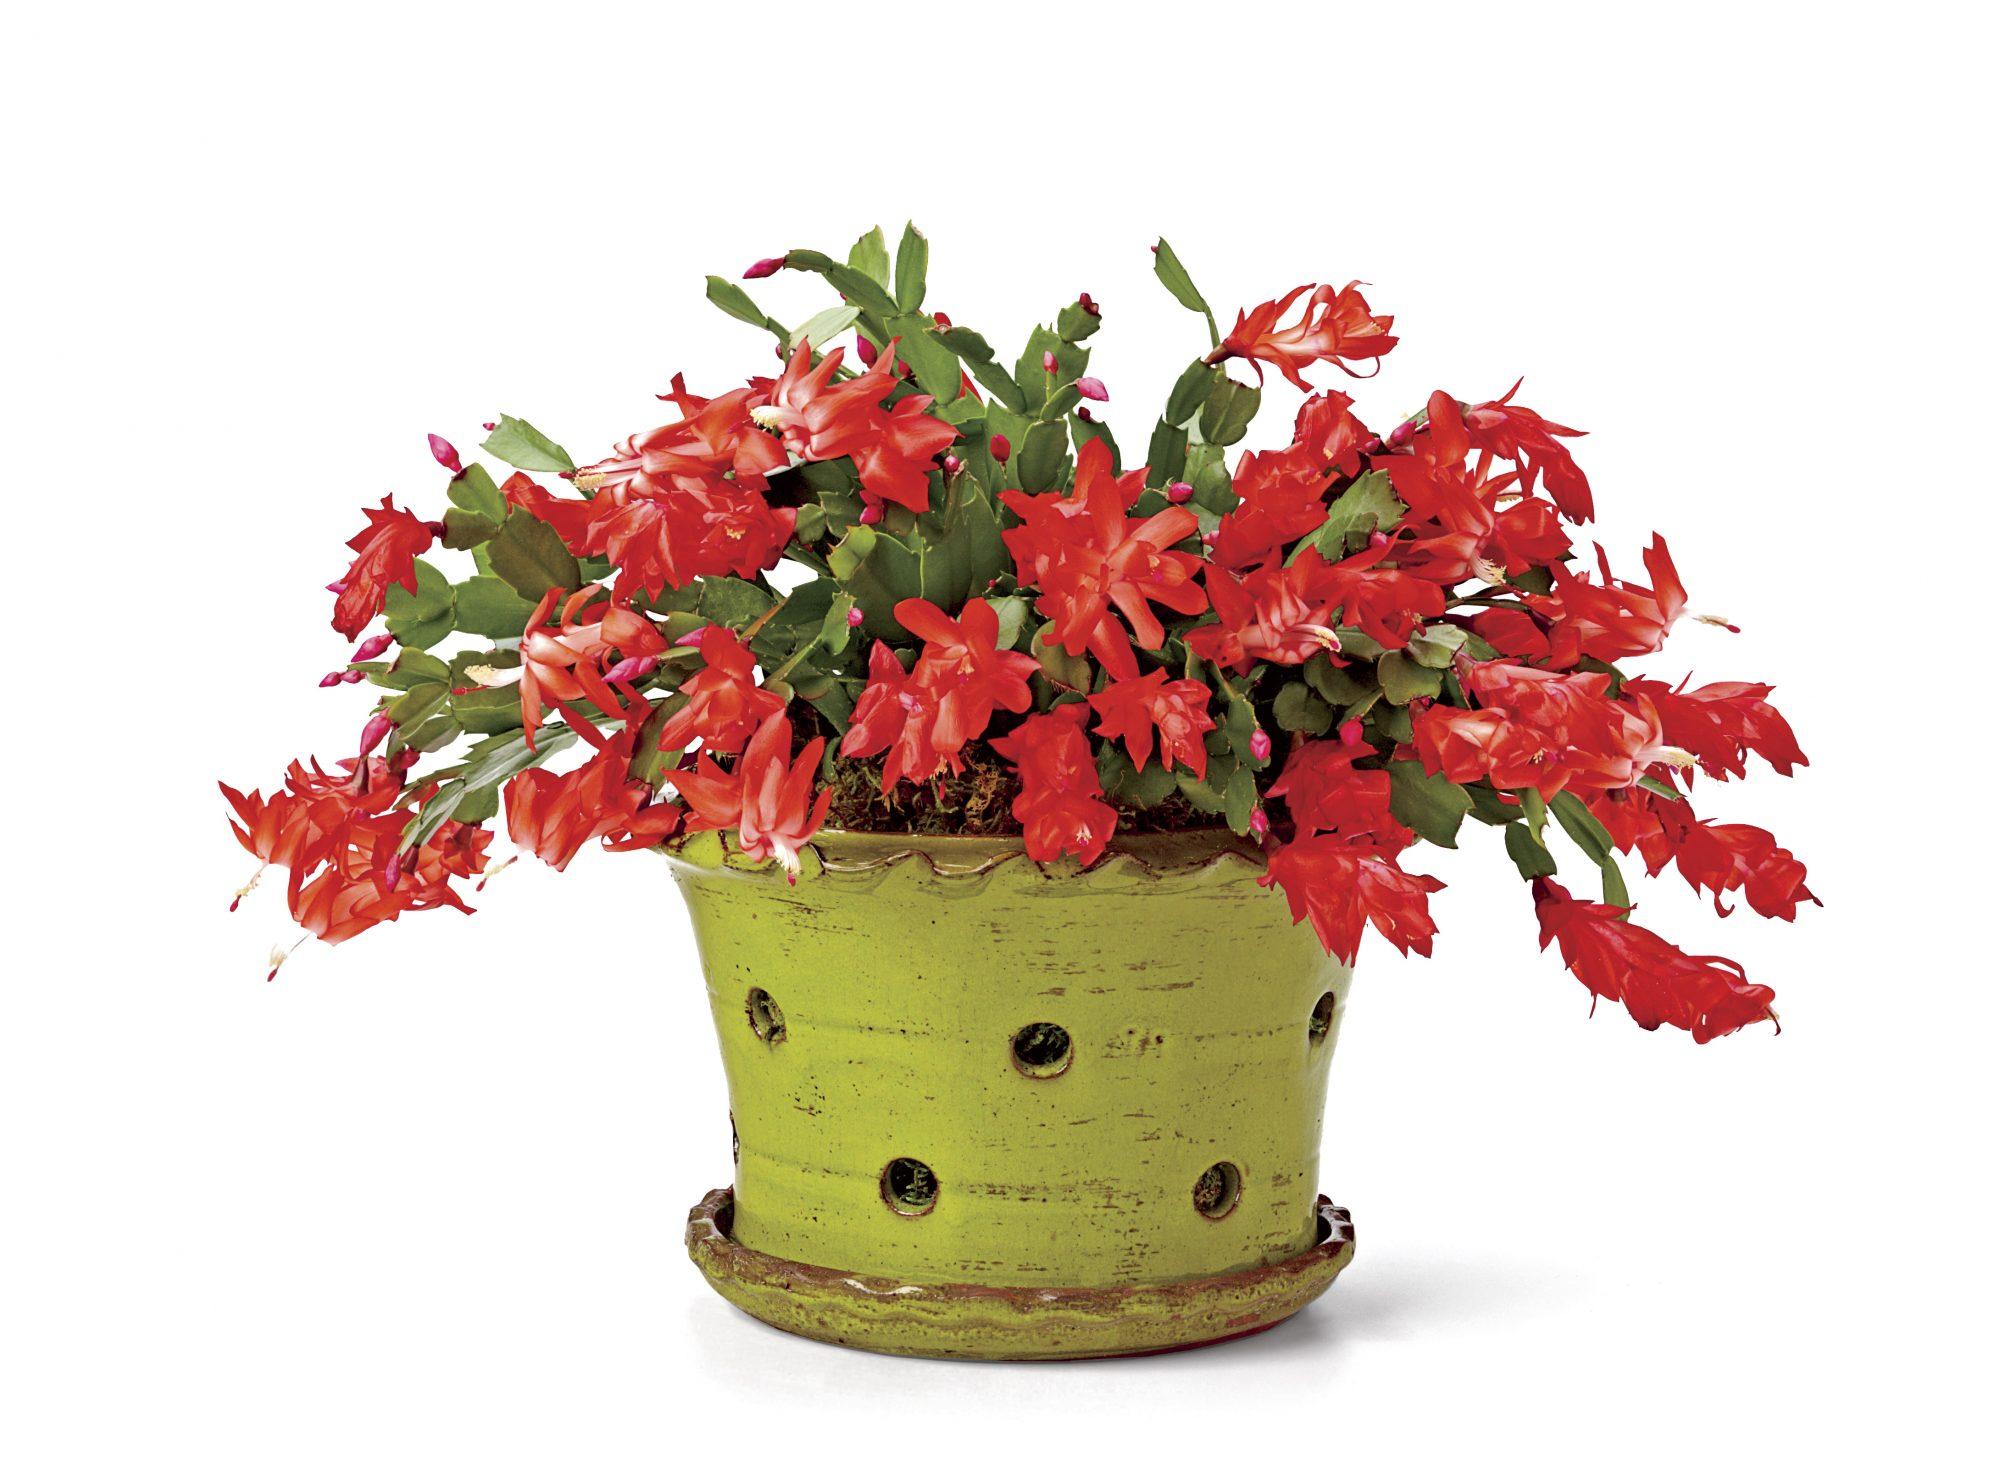 Christmas Cactus in Pot